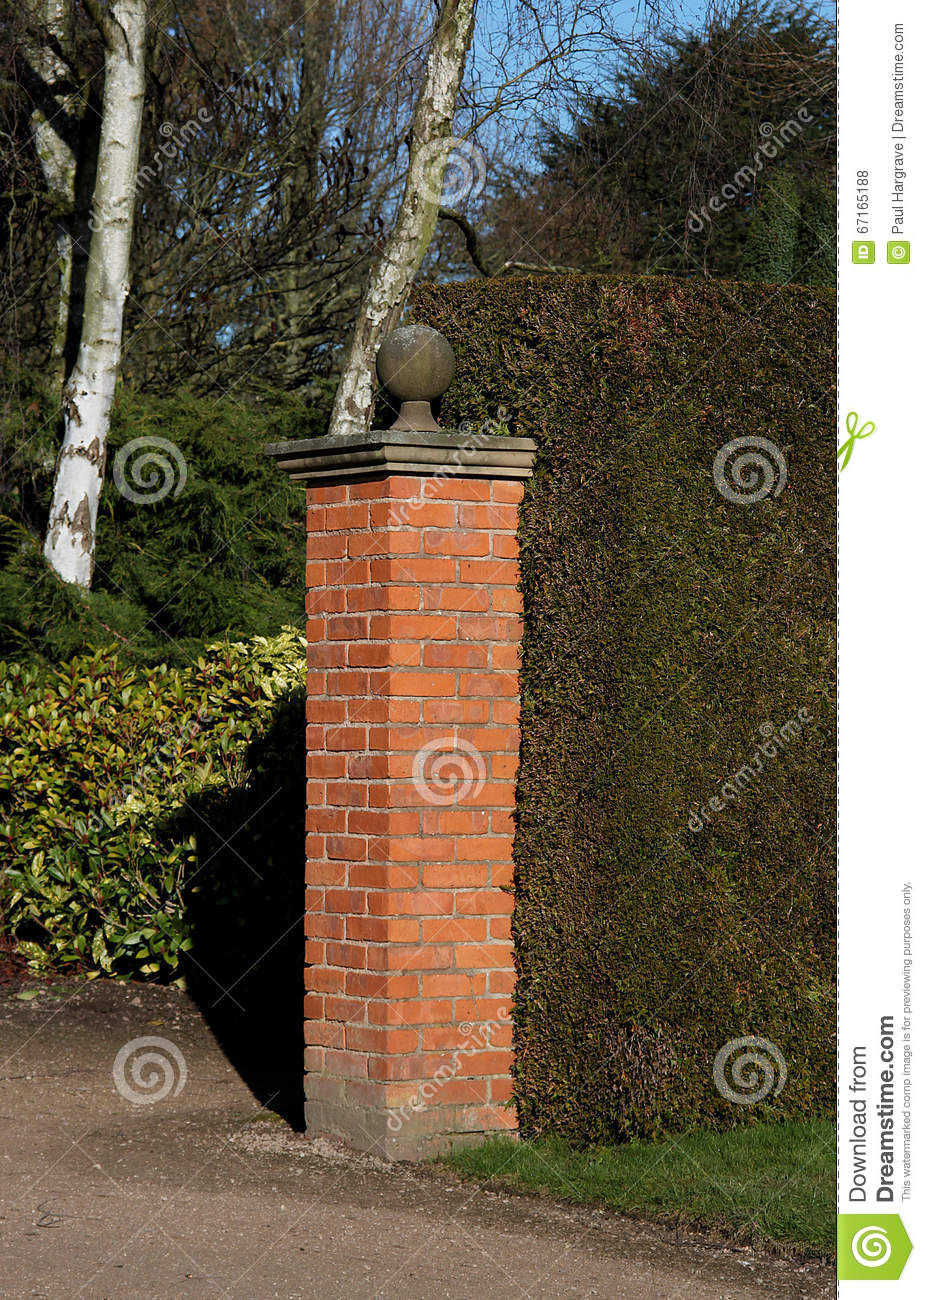 A red brick pillar stock photo image of hedge structure 67165188 - Clases de ladrillos ...